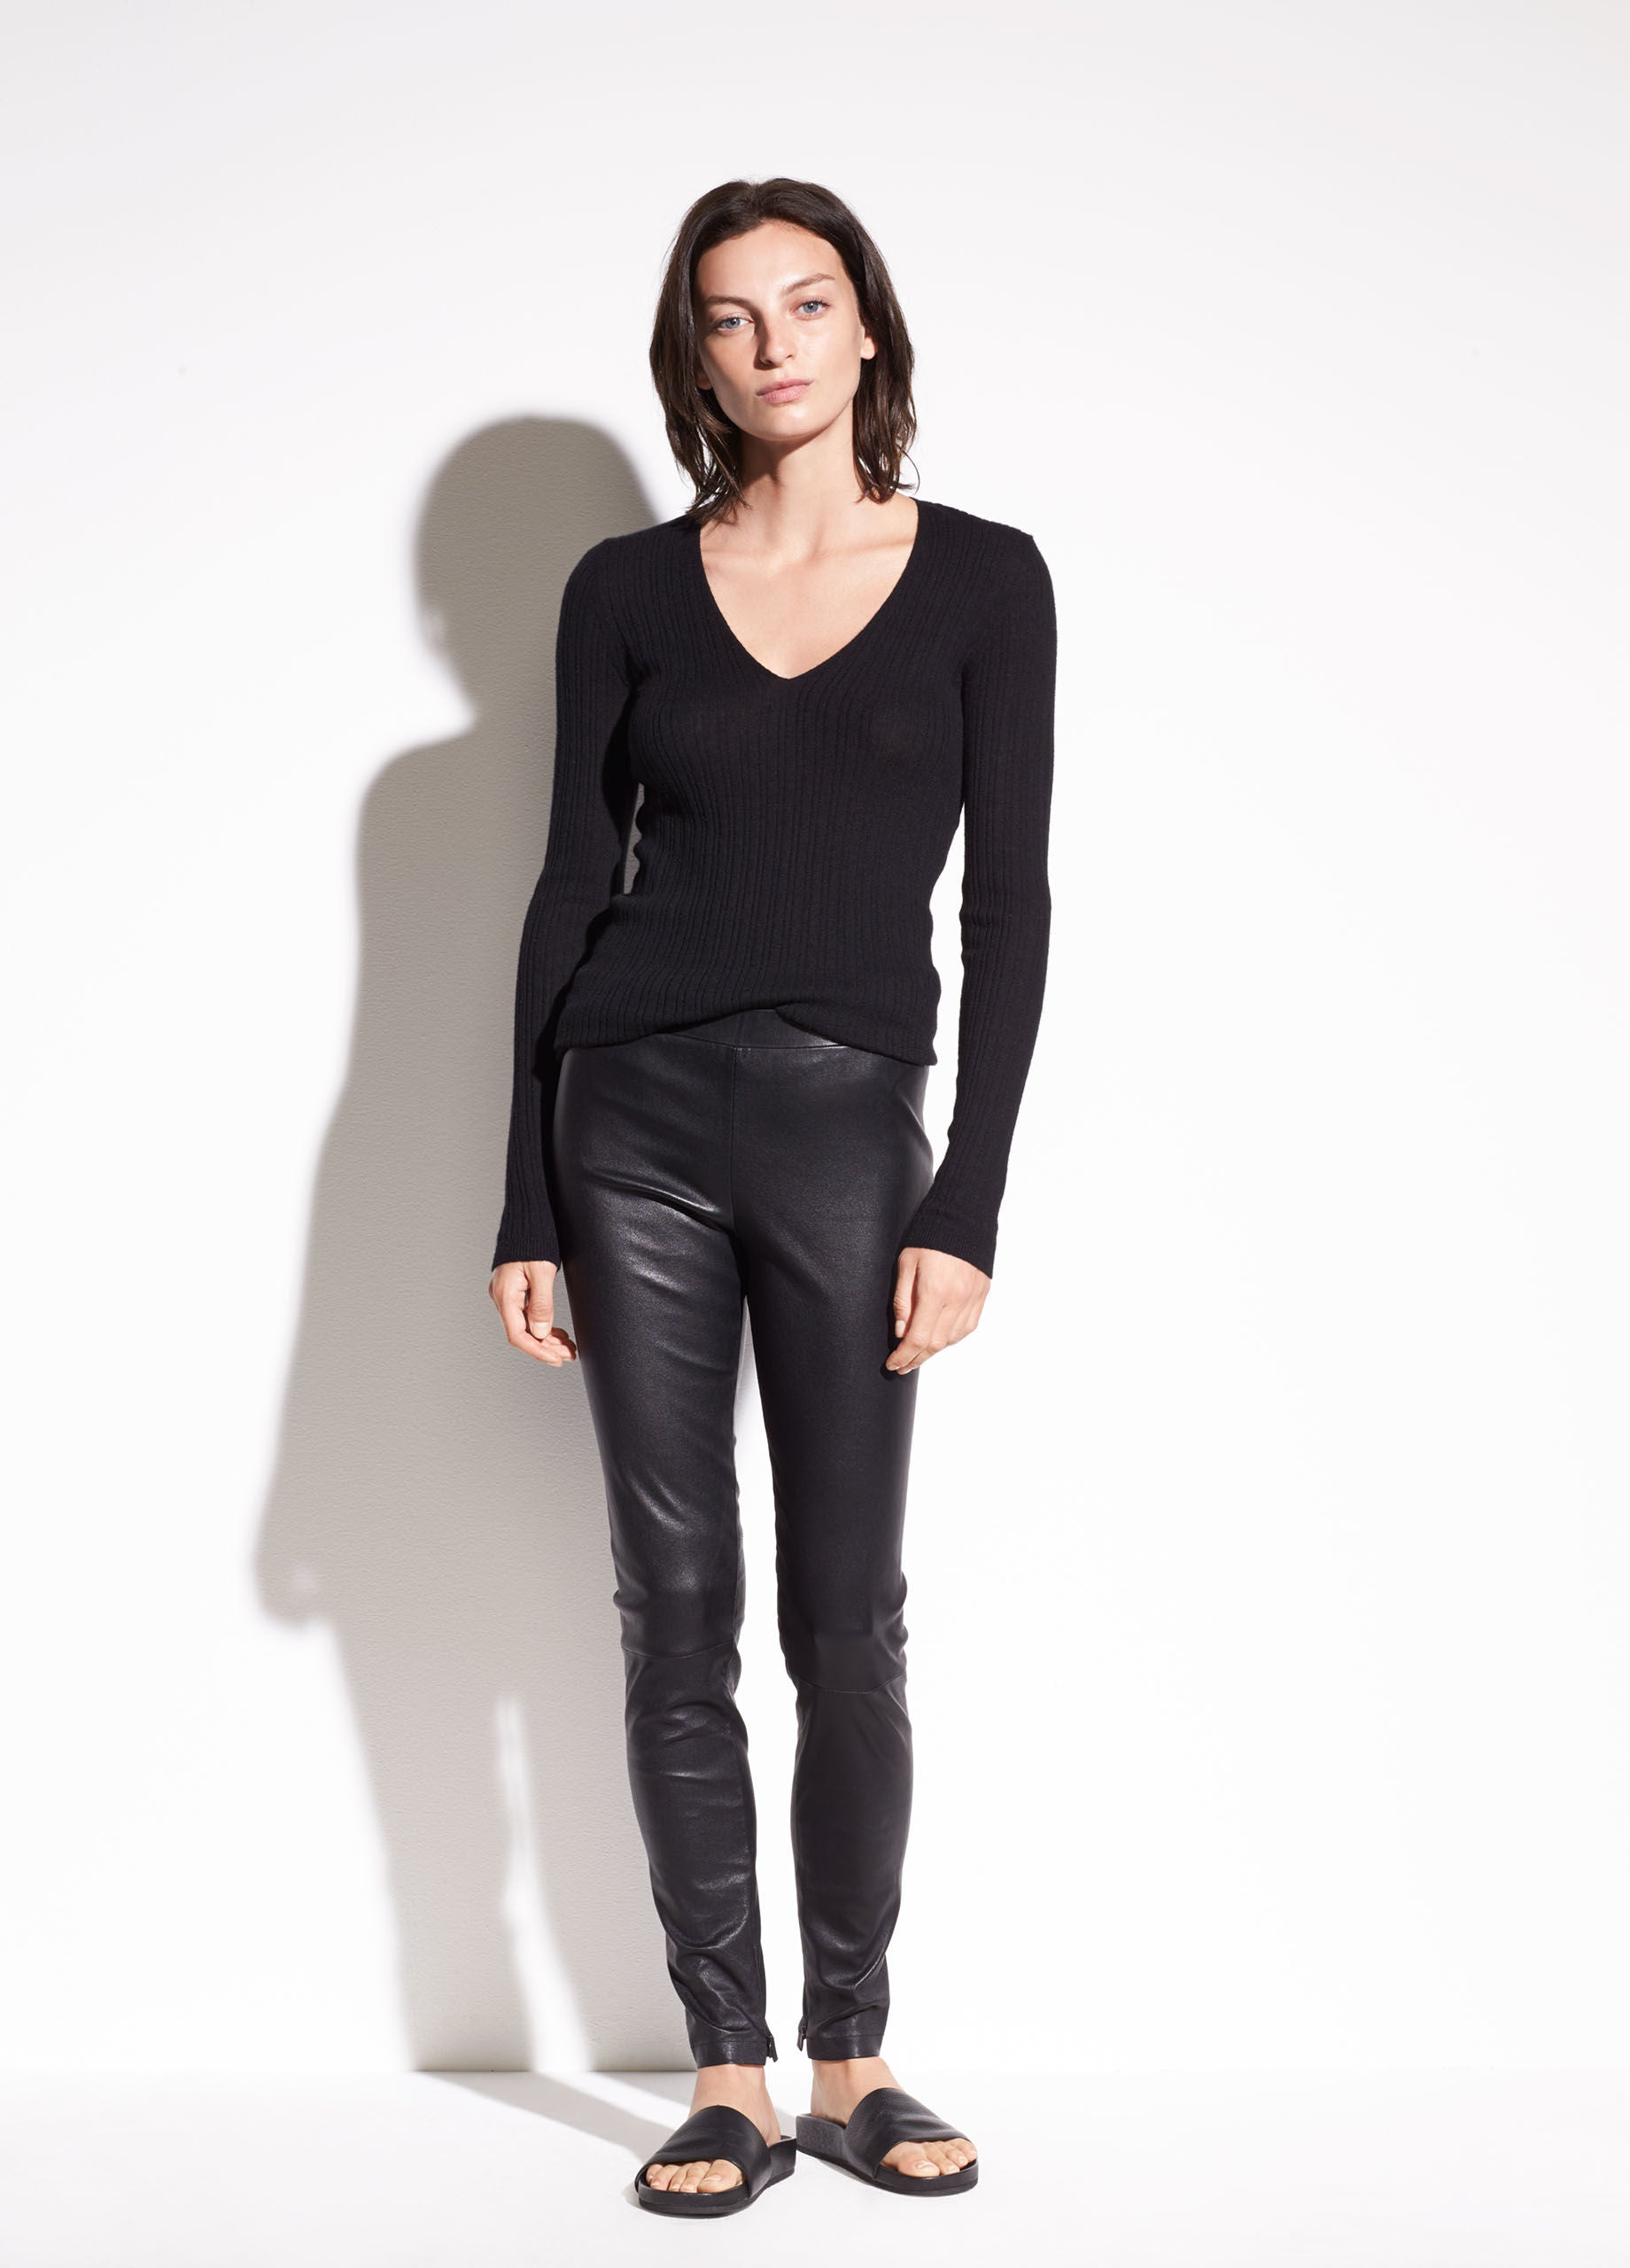 Vince Black Stretch Leather Ankle Legging found at PATRICIA in Southern Pines and Raleigh, NC